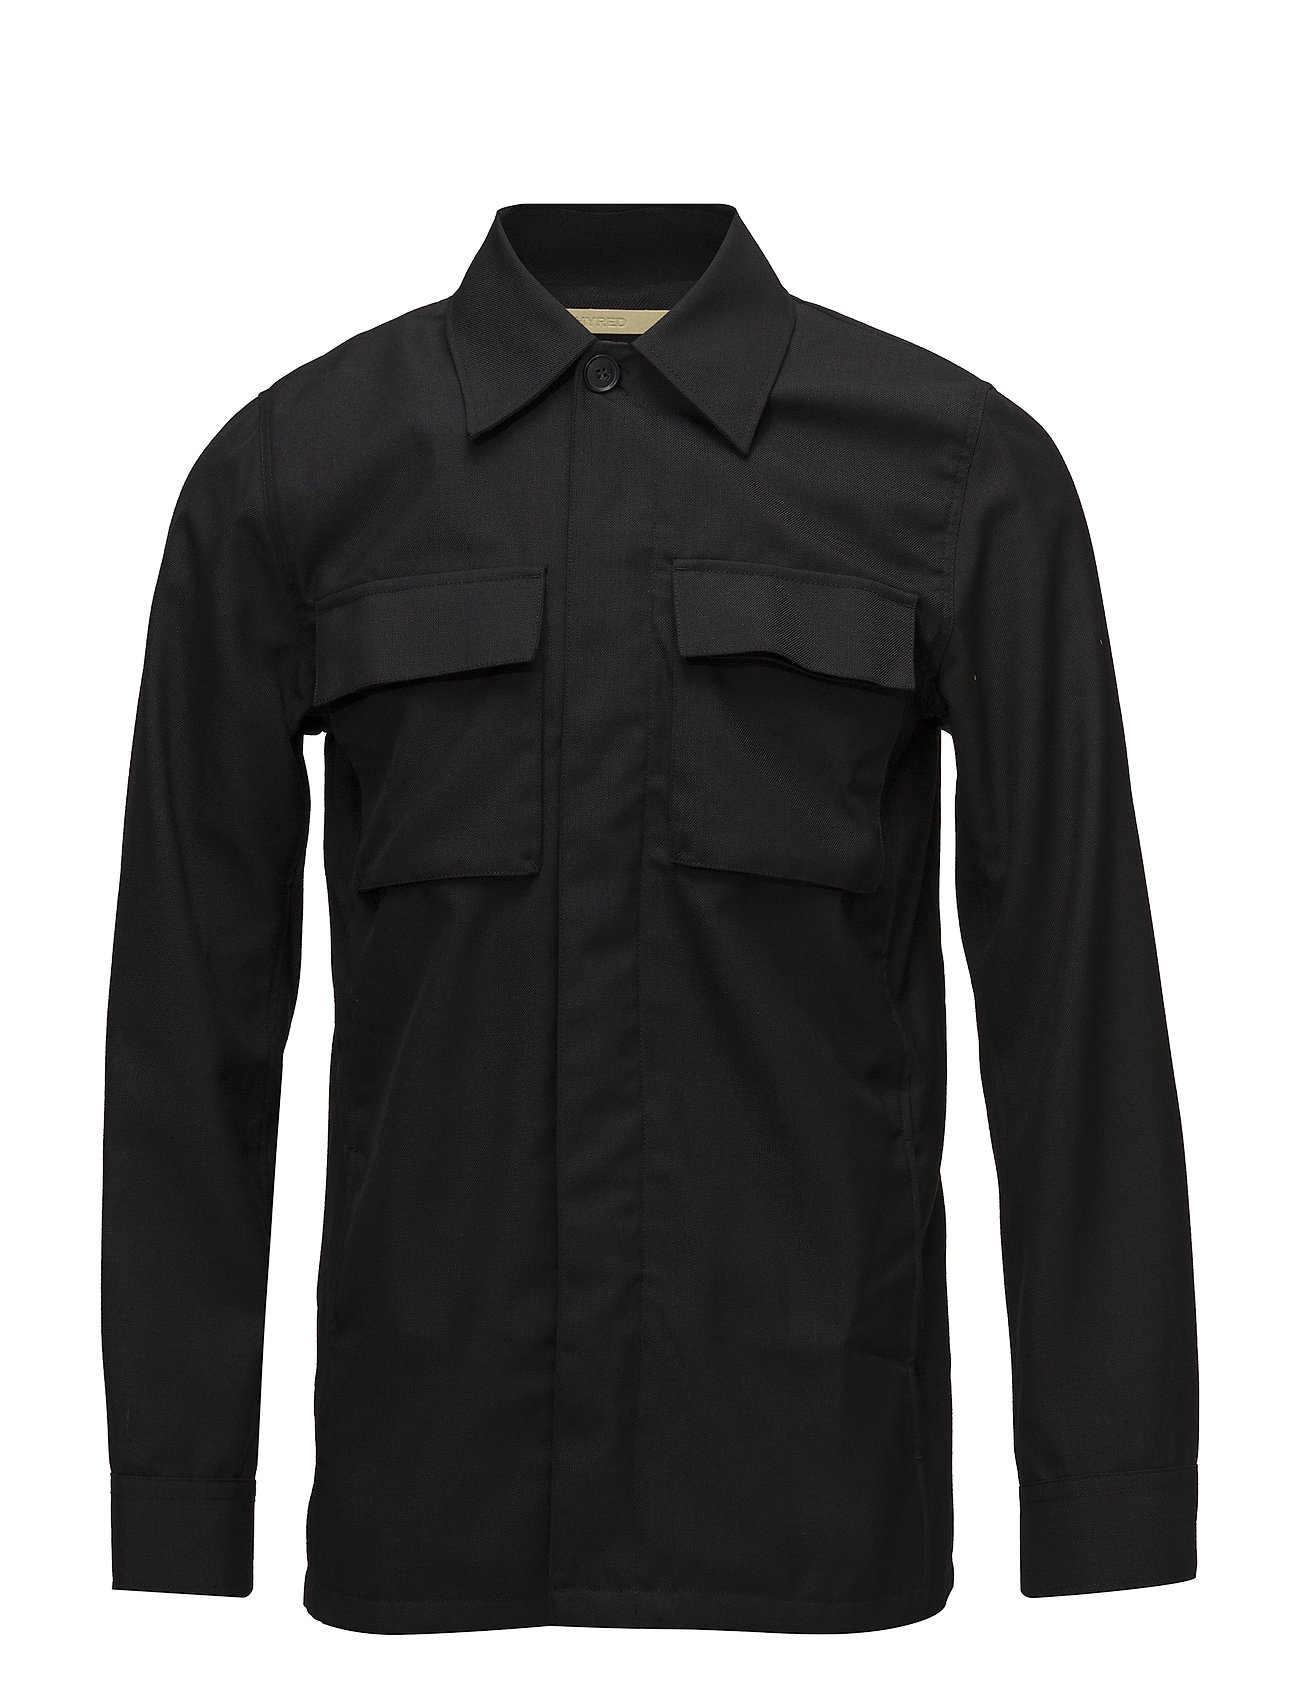 Whyred DUVALL OFFICER SHIRT - BLACK